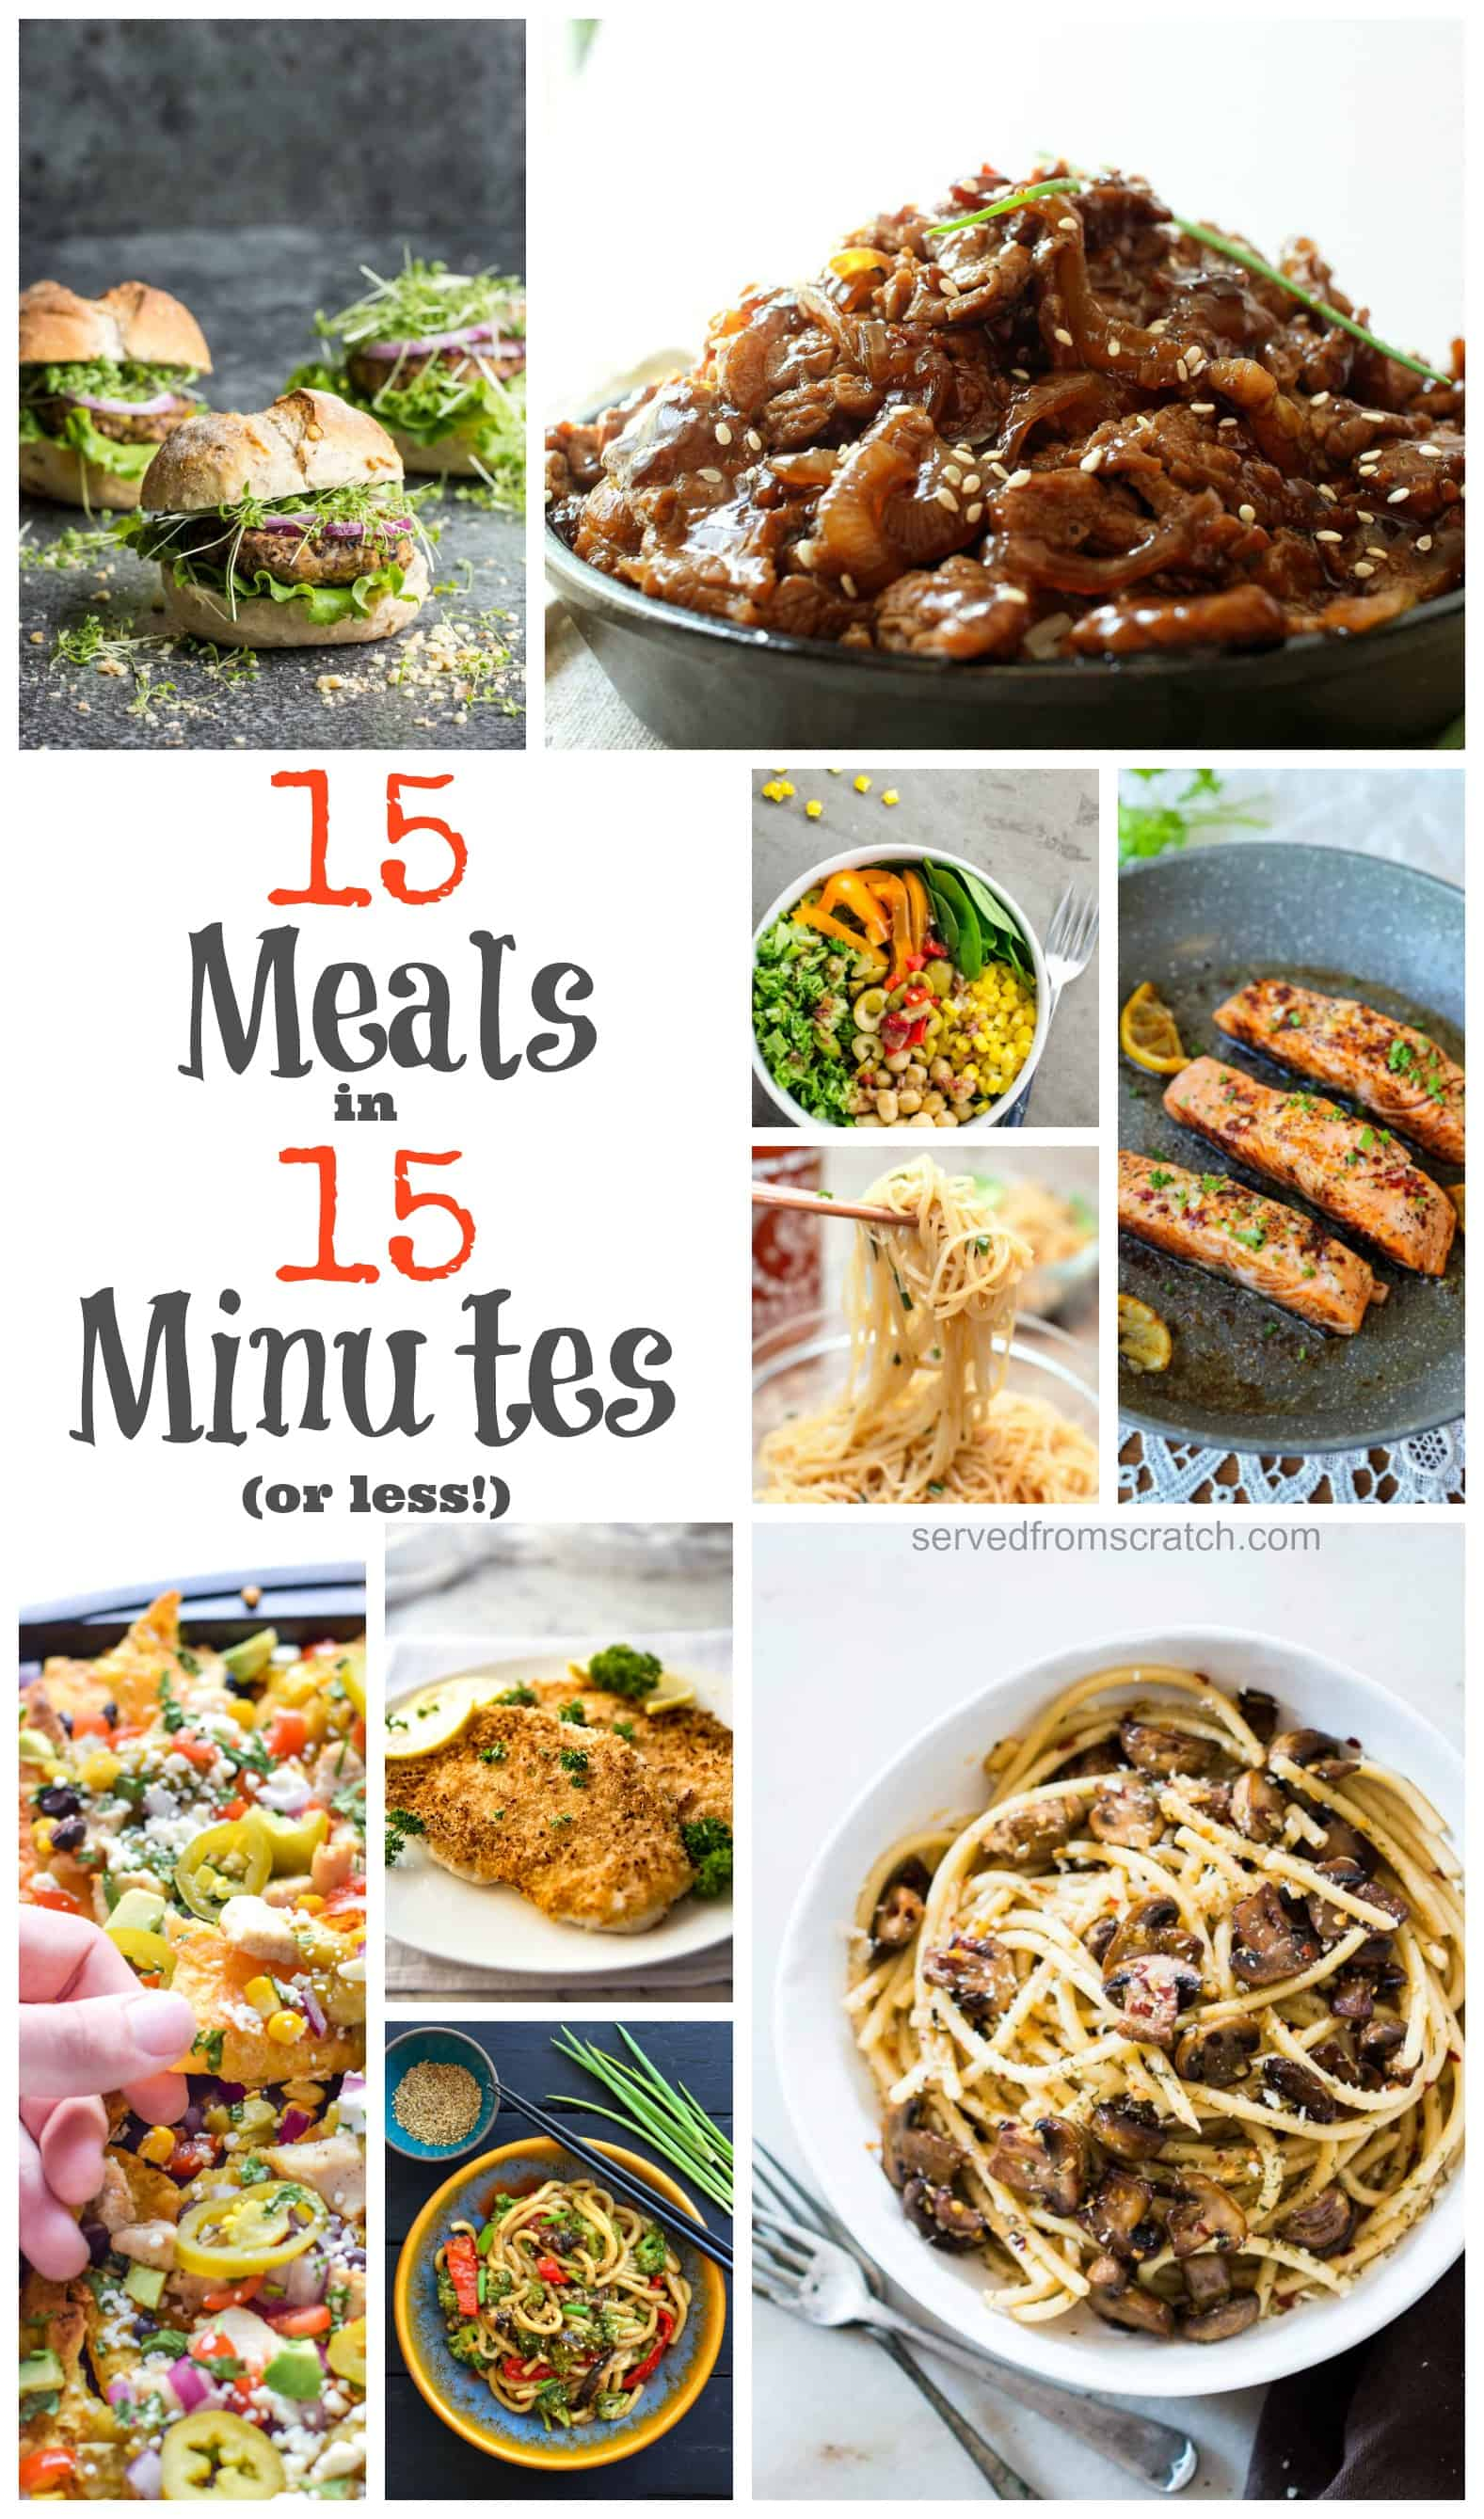 life-gets-in-the-way-but-dinner-doesnt-have-to-suffer-make-dinner-nearly-from-scratch-in-15-minutes-or-less-2